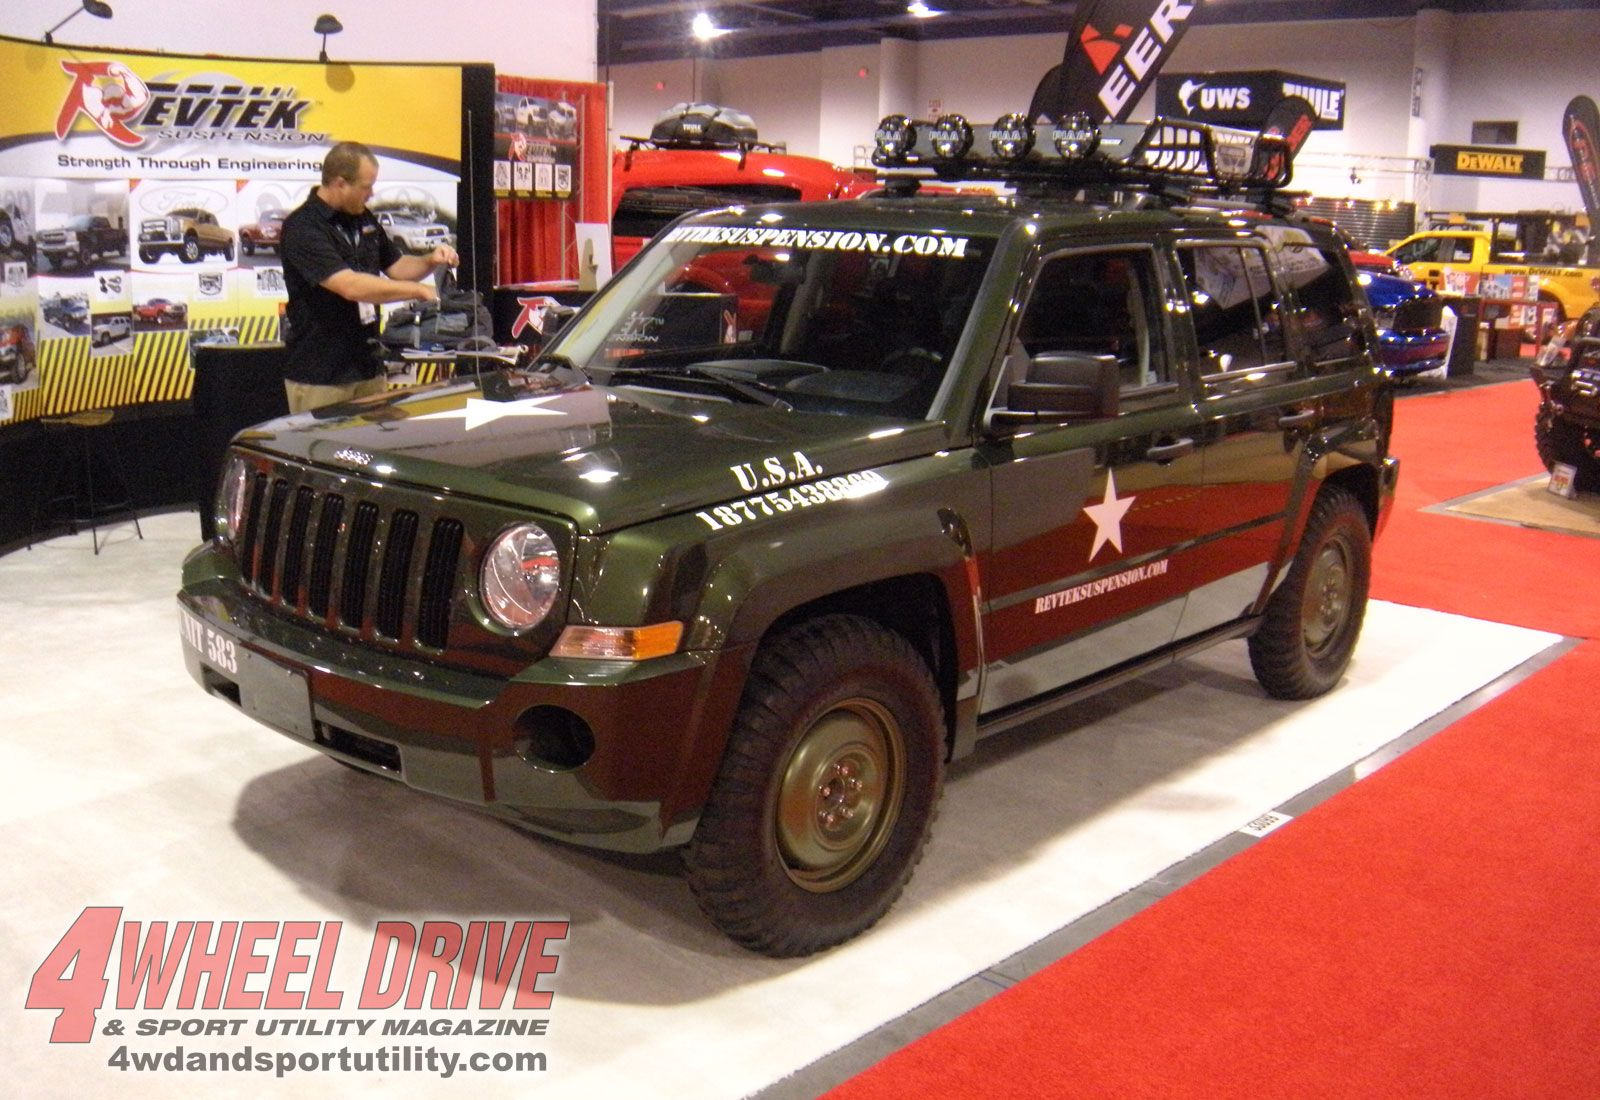 Pretty Close To What I Wanna Get Tricked Out Jeep Patriot Just